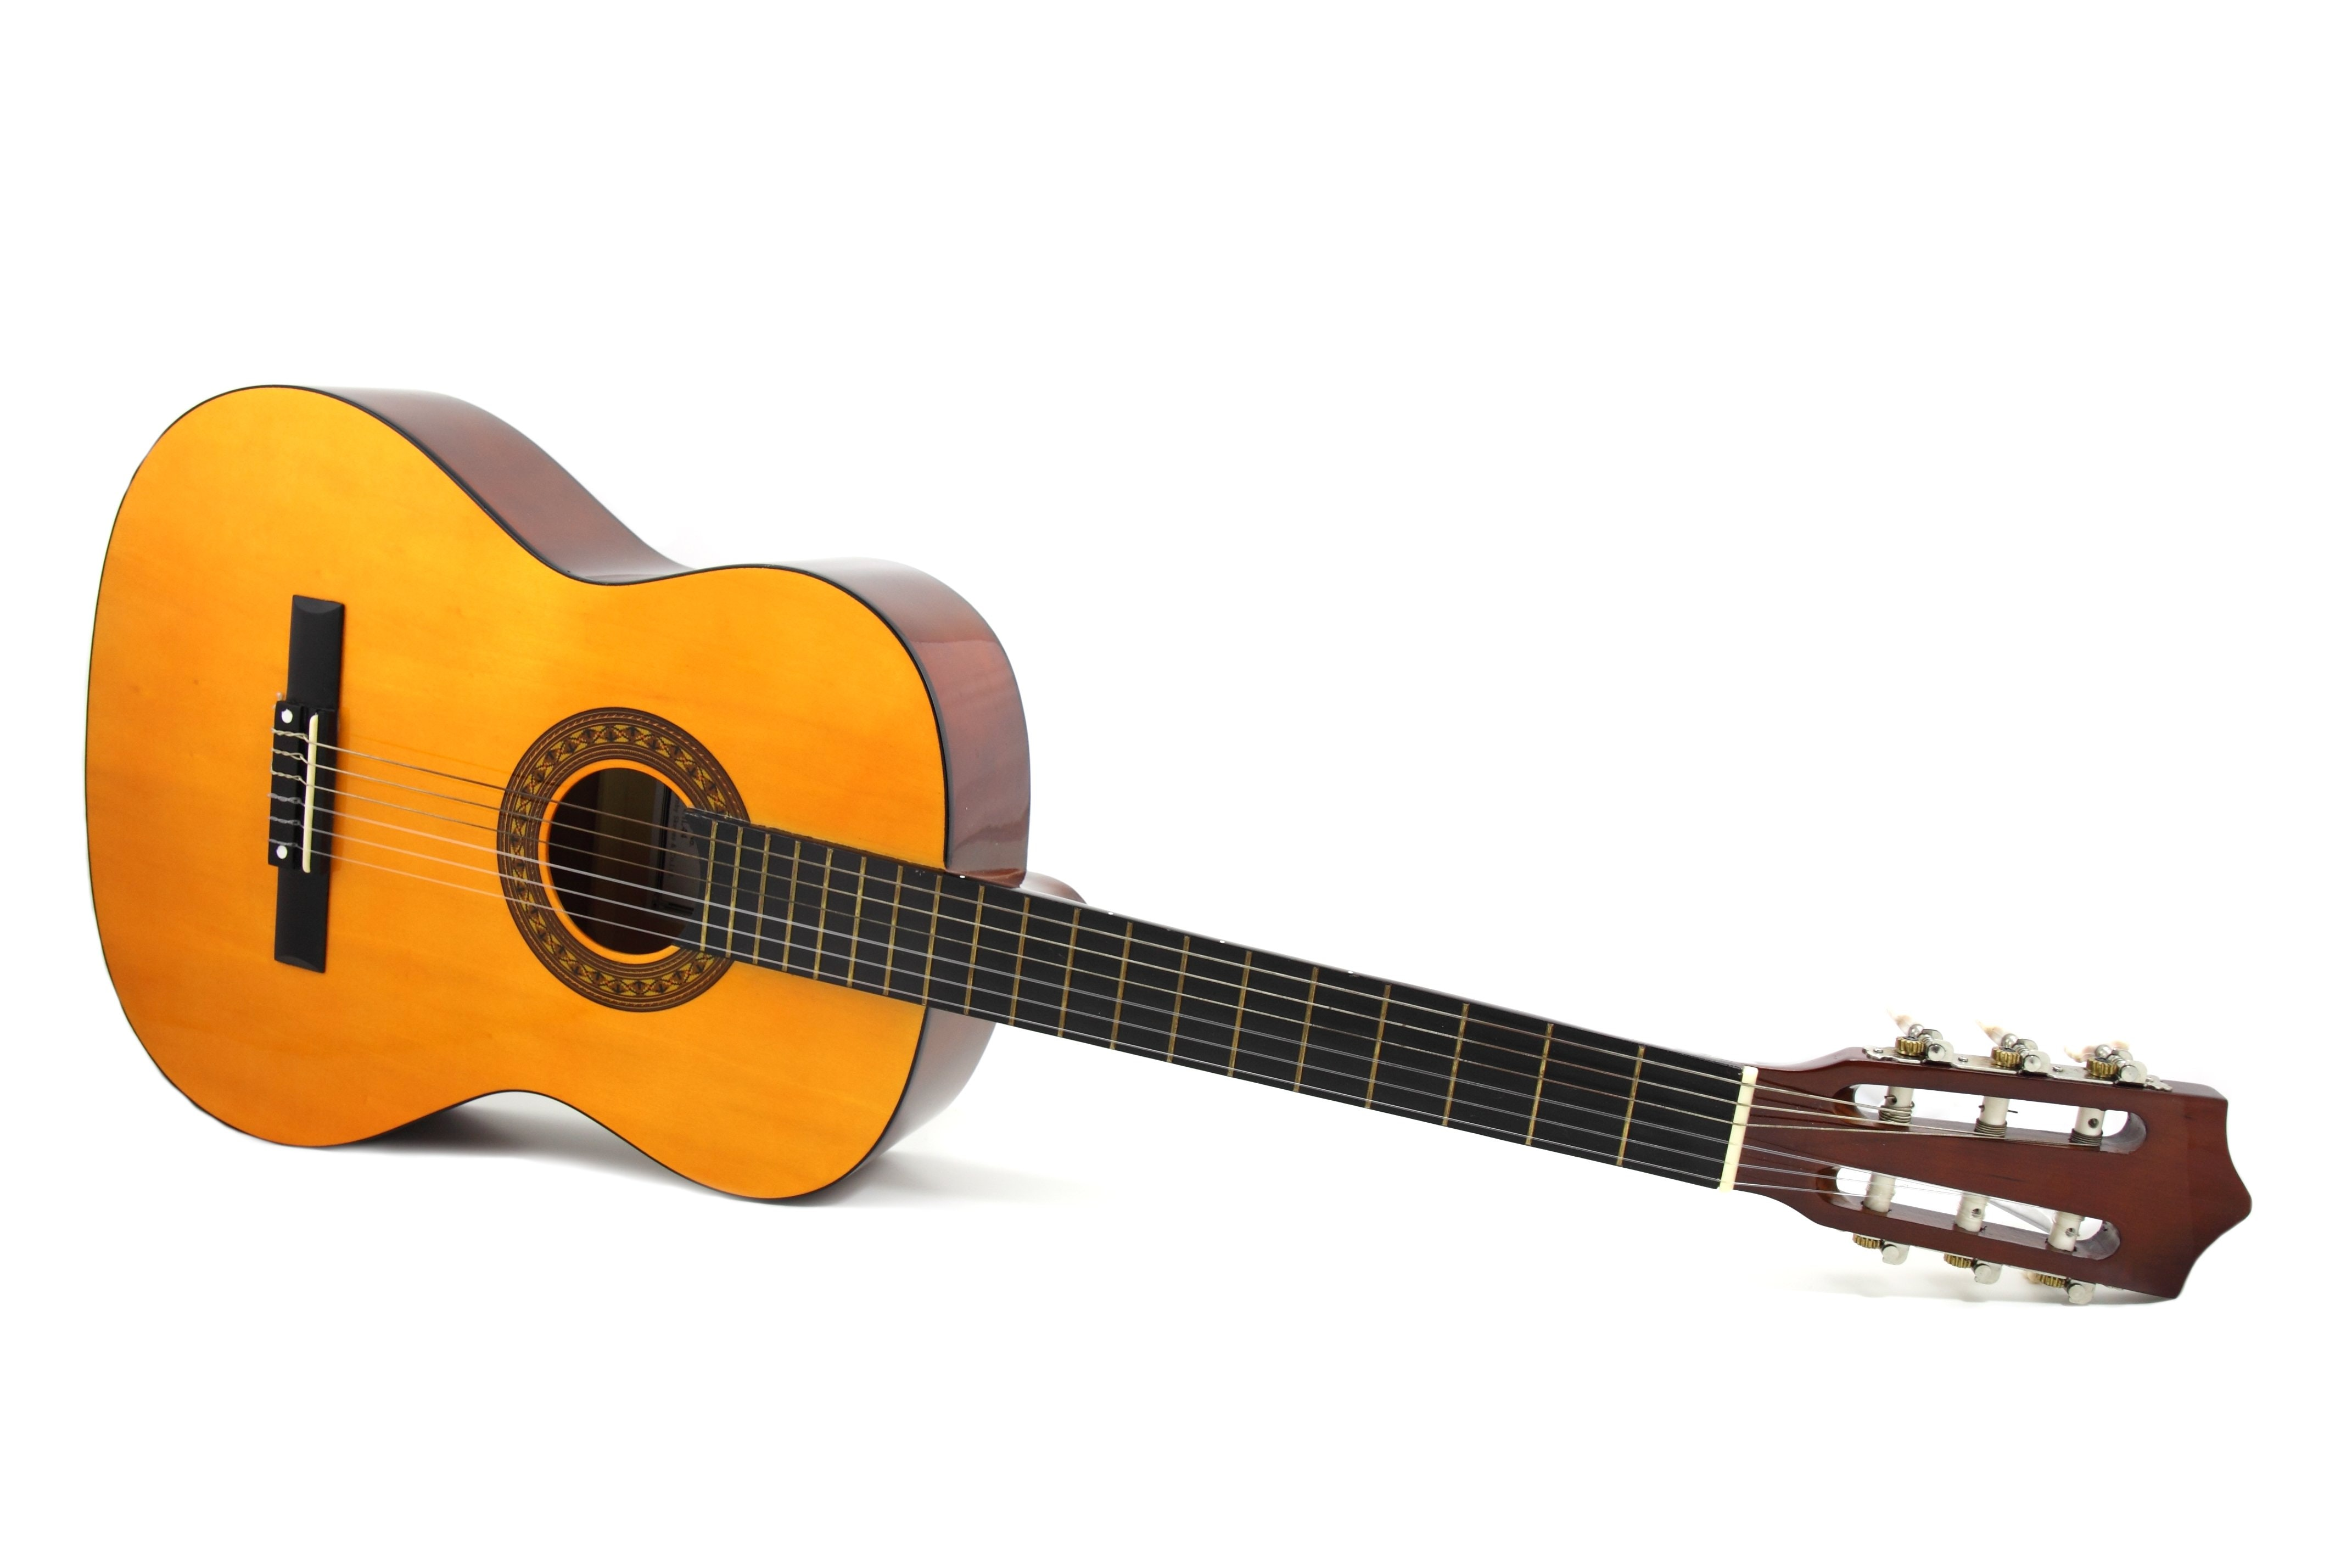 Brown Dreadnought Classical Guitar Free Stock Photo